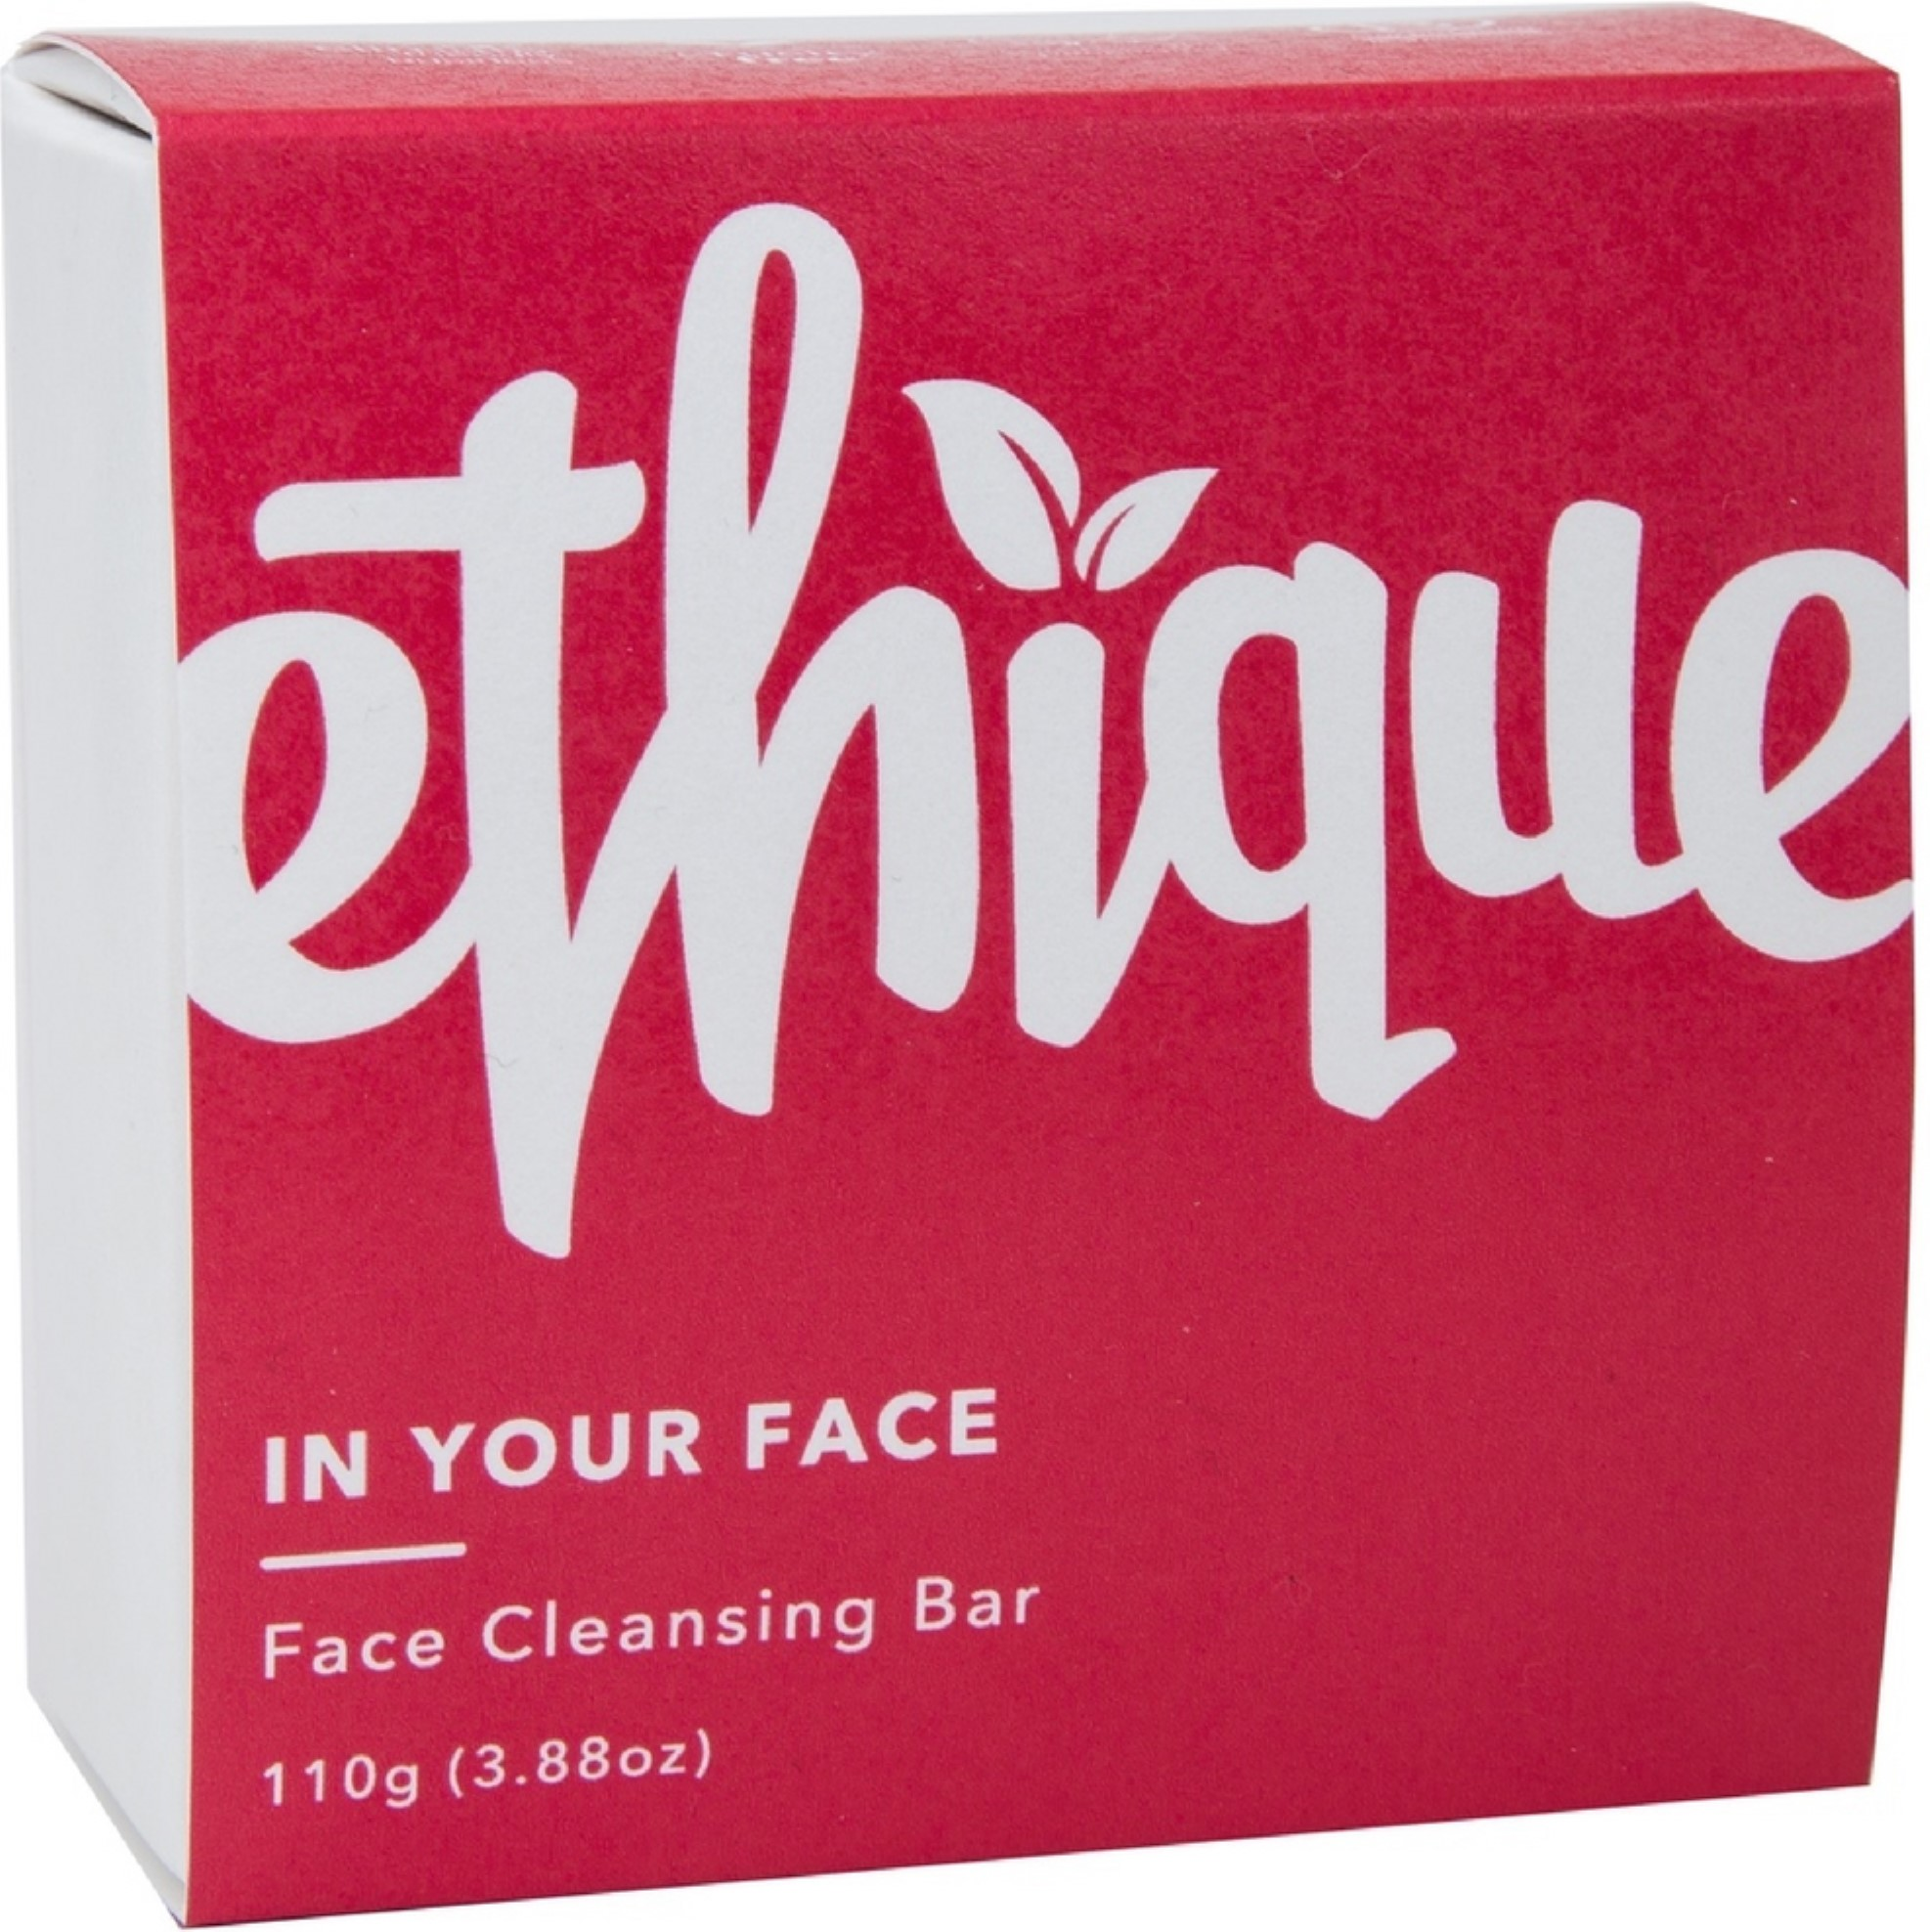 4 Pack - Ethique Eco-Friendly Face Cleansing Bar, In Your Face 3.88 oz Ultimate Anti-Age Renew Exfoliating Cream 1.7oz